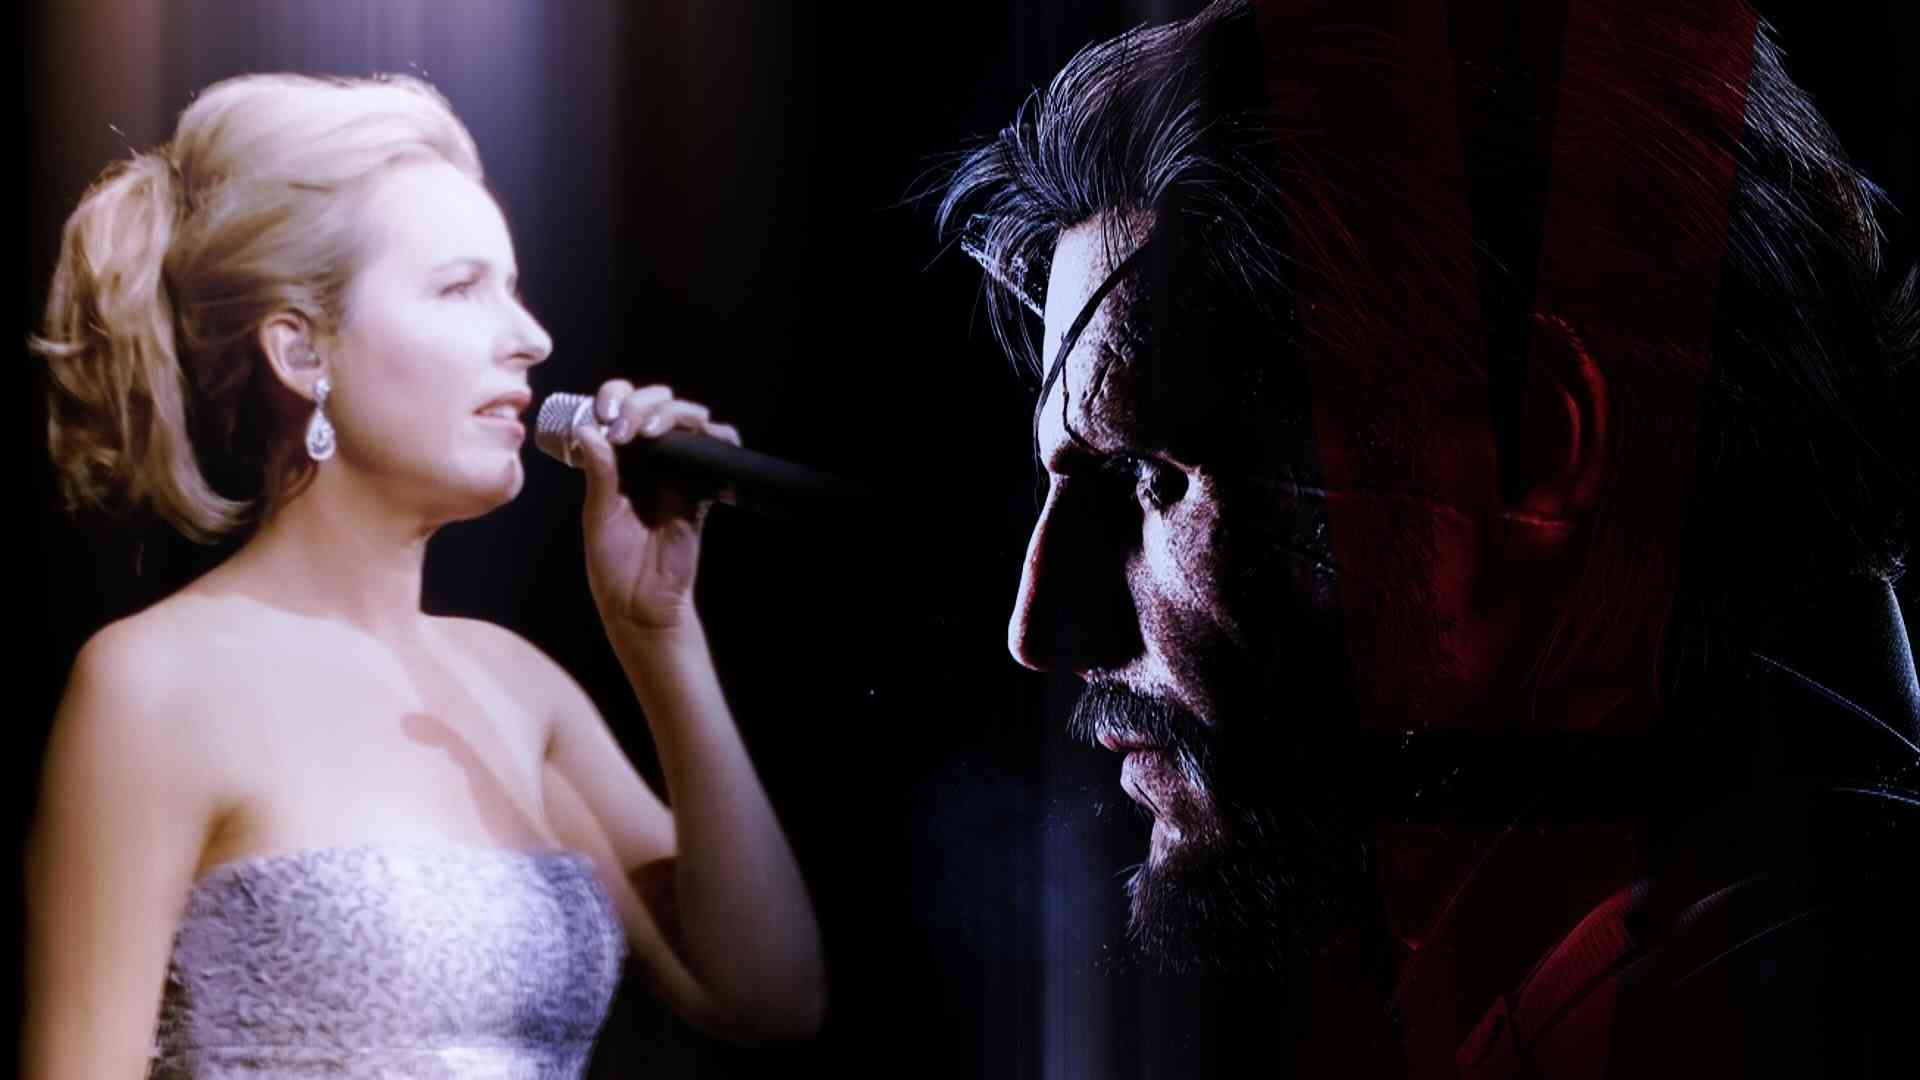 Metal Gear Solid V - Sins of the Father MUSIC VIDEO [Full song] - YouTube